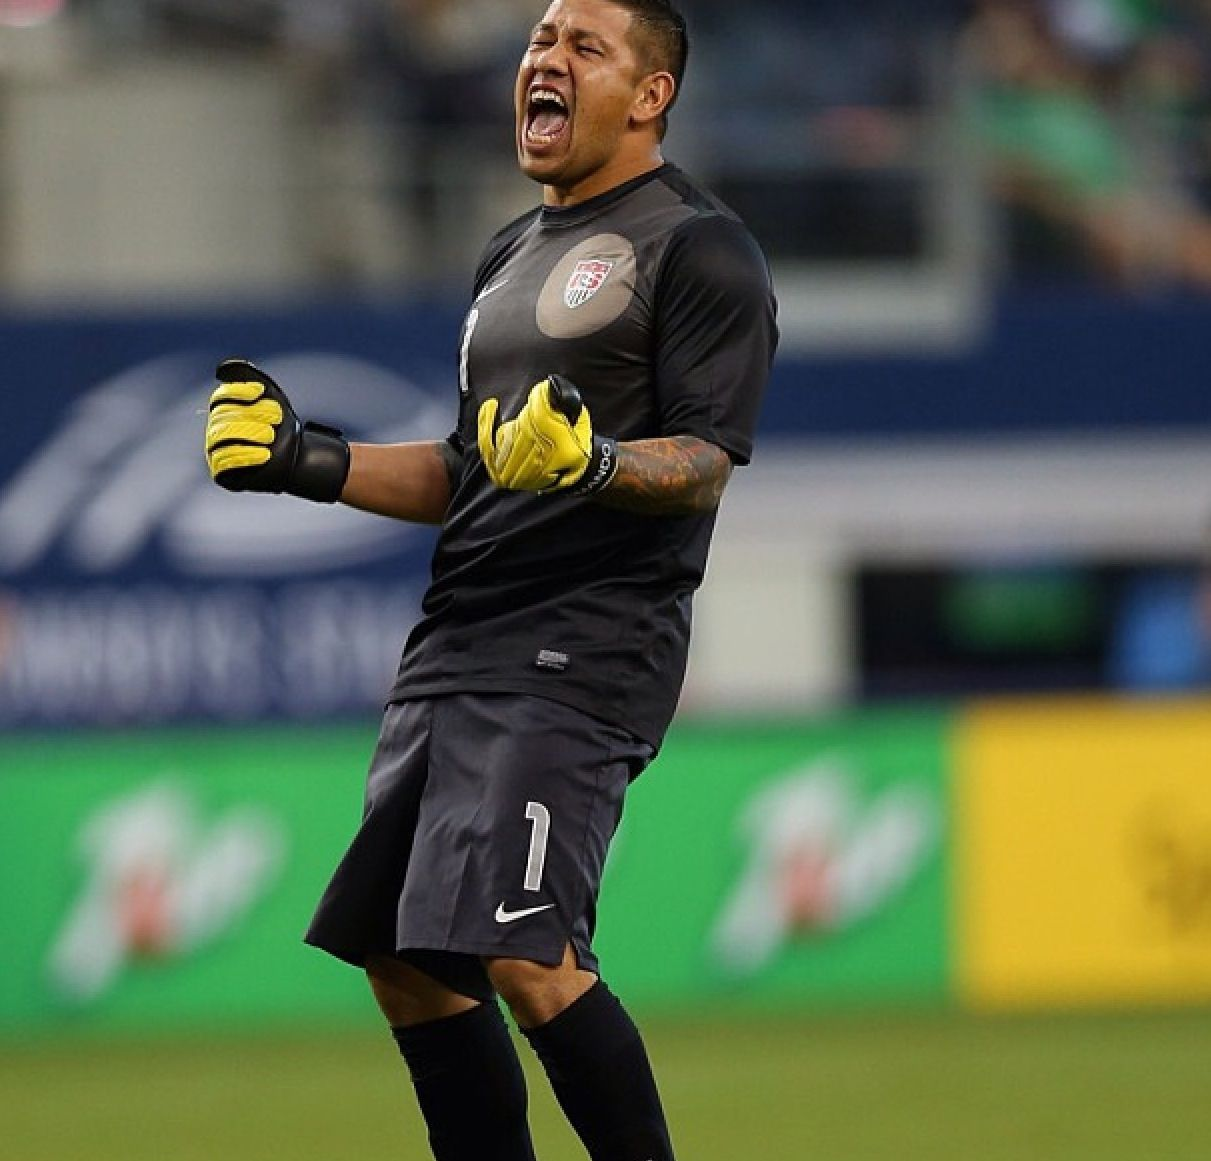 Nick Rimando He S My Height And He Made It Us National Goalkeeper Soccer Usmnt